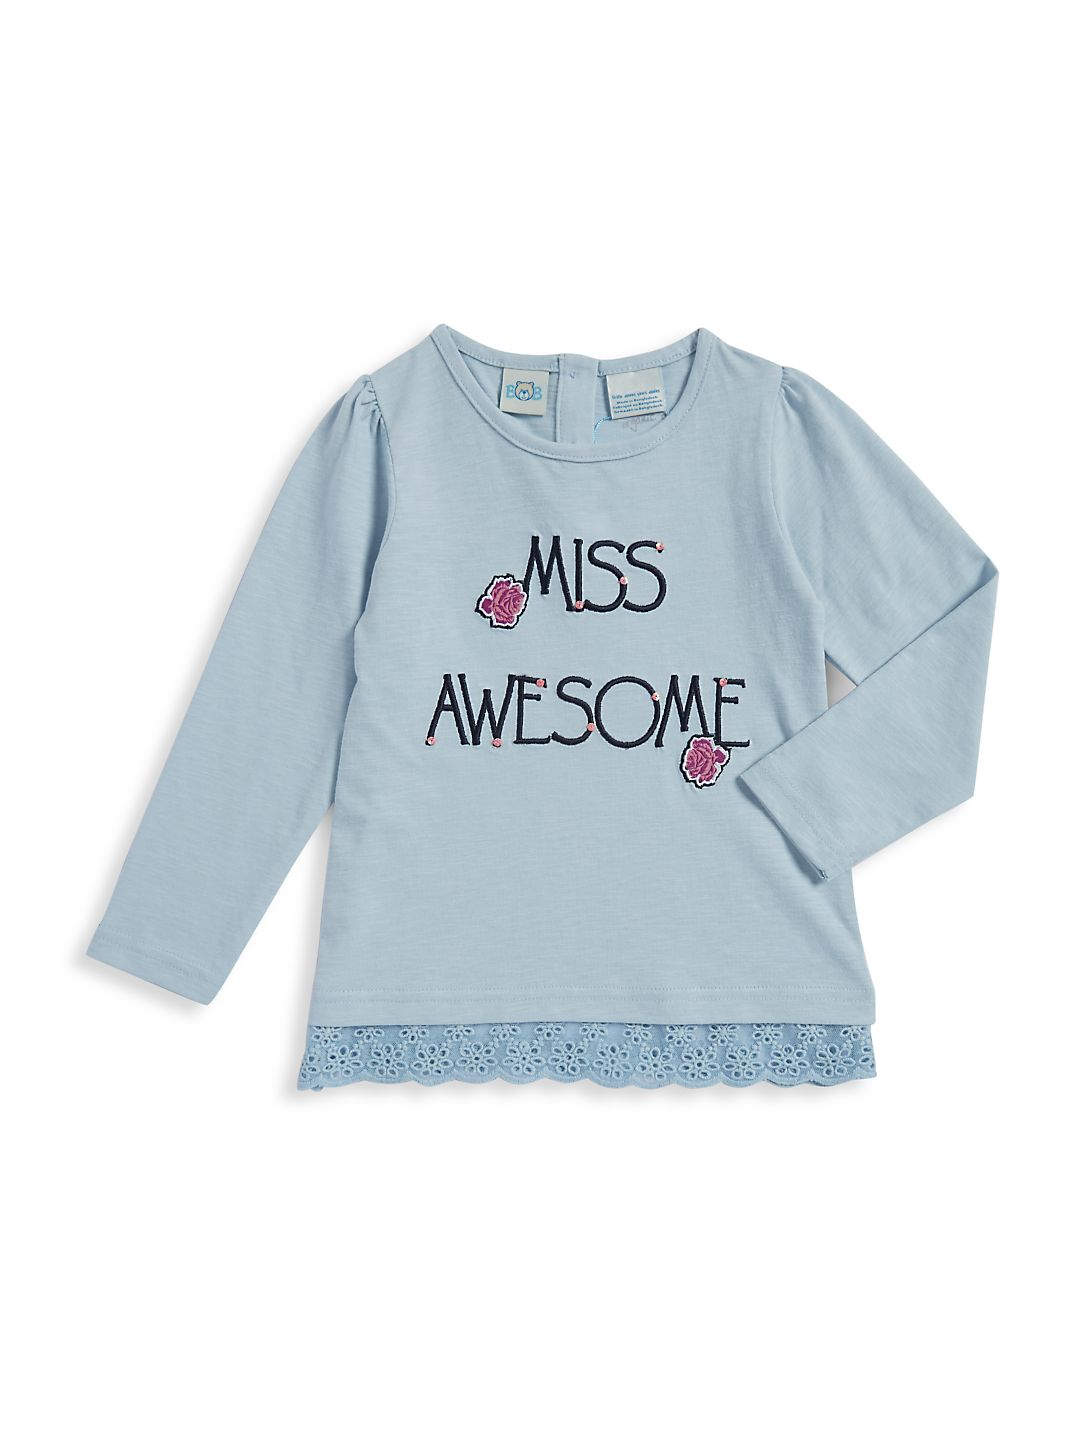 Little Girl's Printed Top